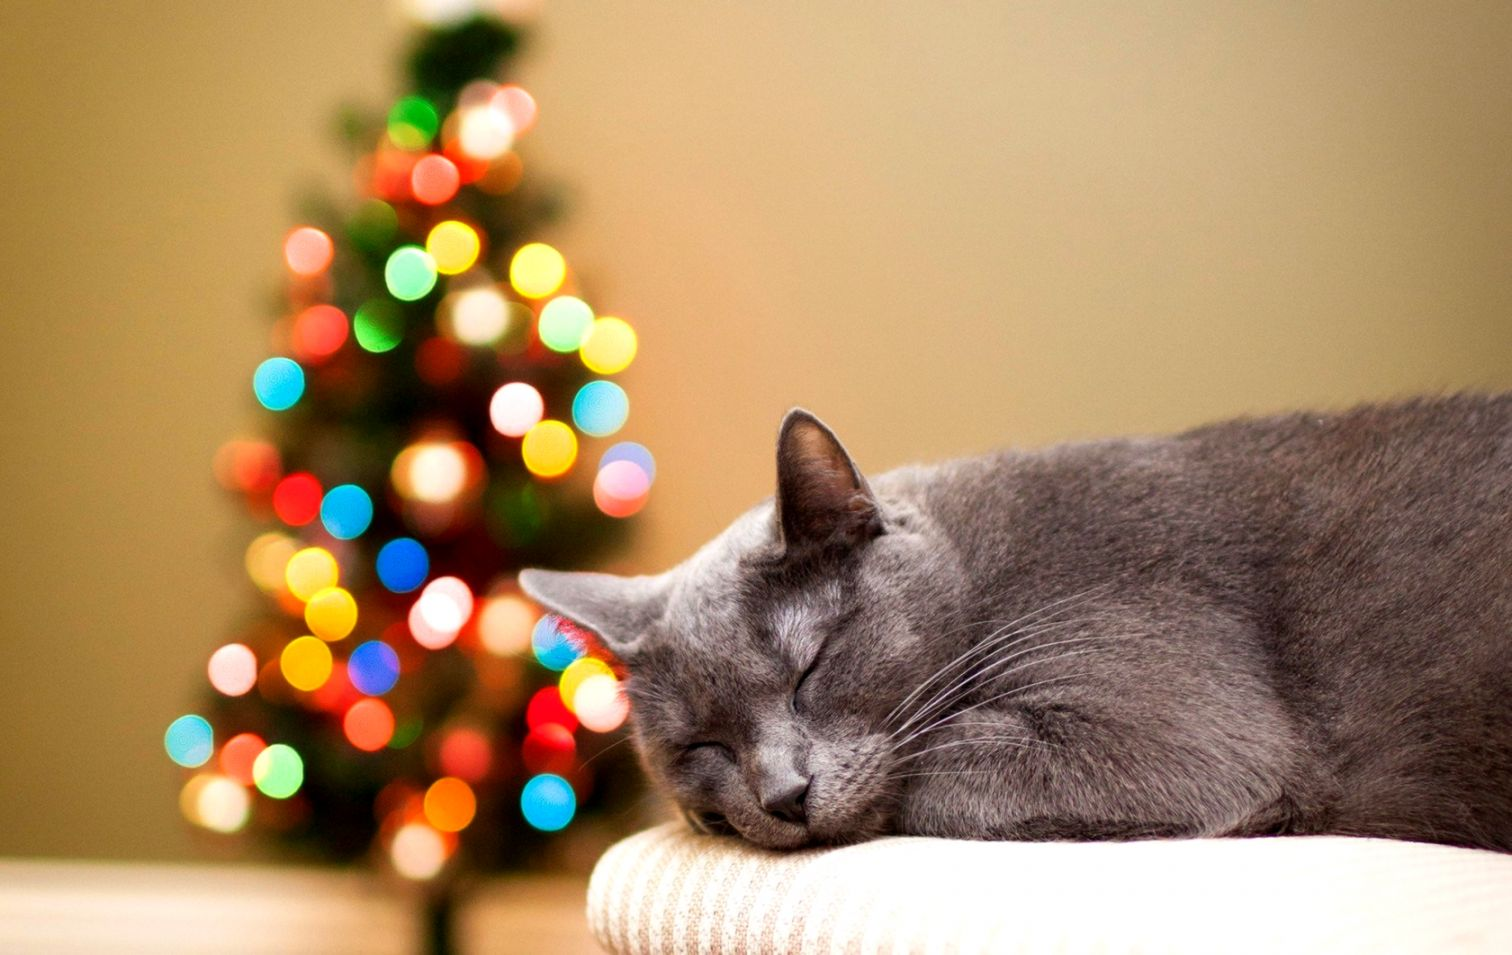 Cat Christmas Lights New Year Hd Wallpaper  Wallpapers Comp